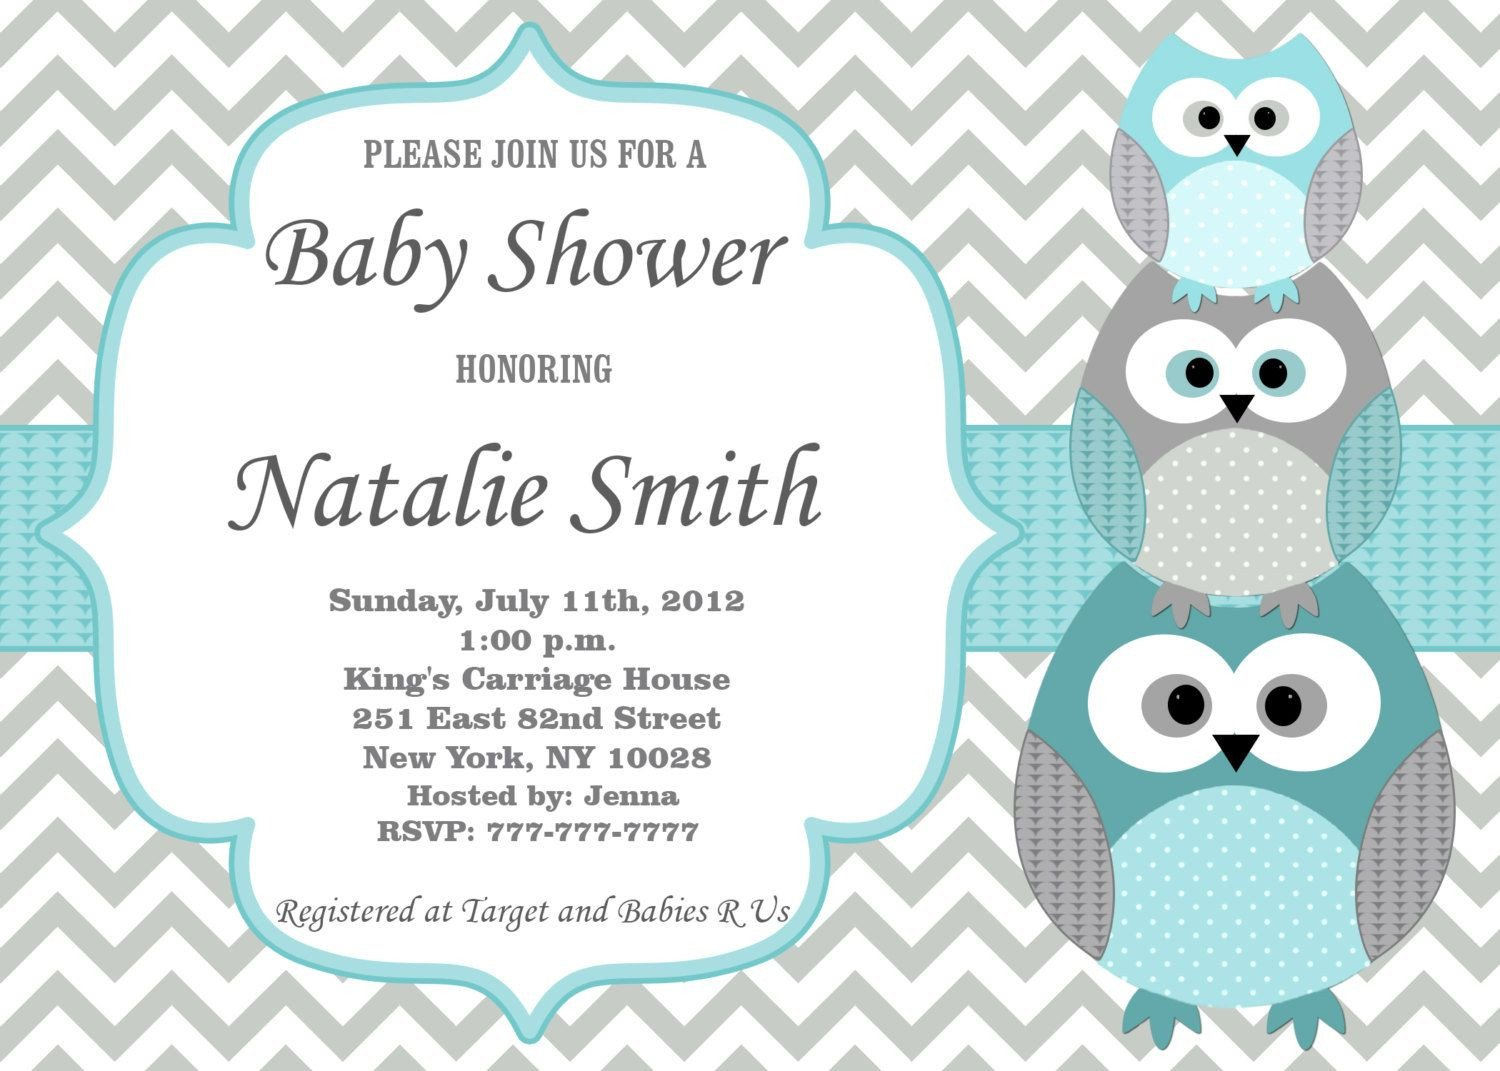 Baby Shower Invitation Free Template Baby Shower Invitation Baby Shower Invitation Templates